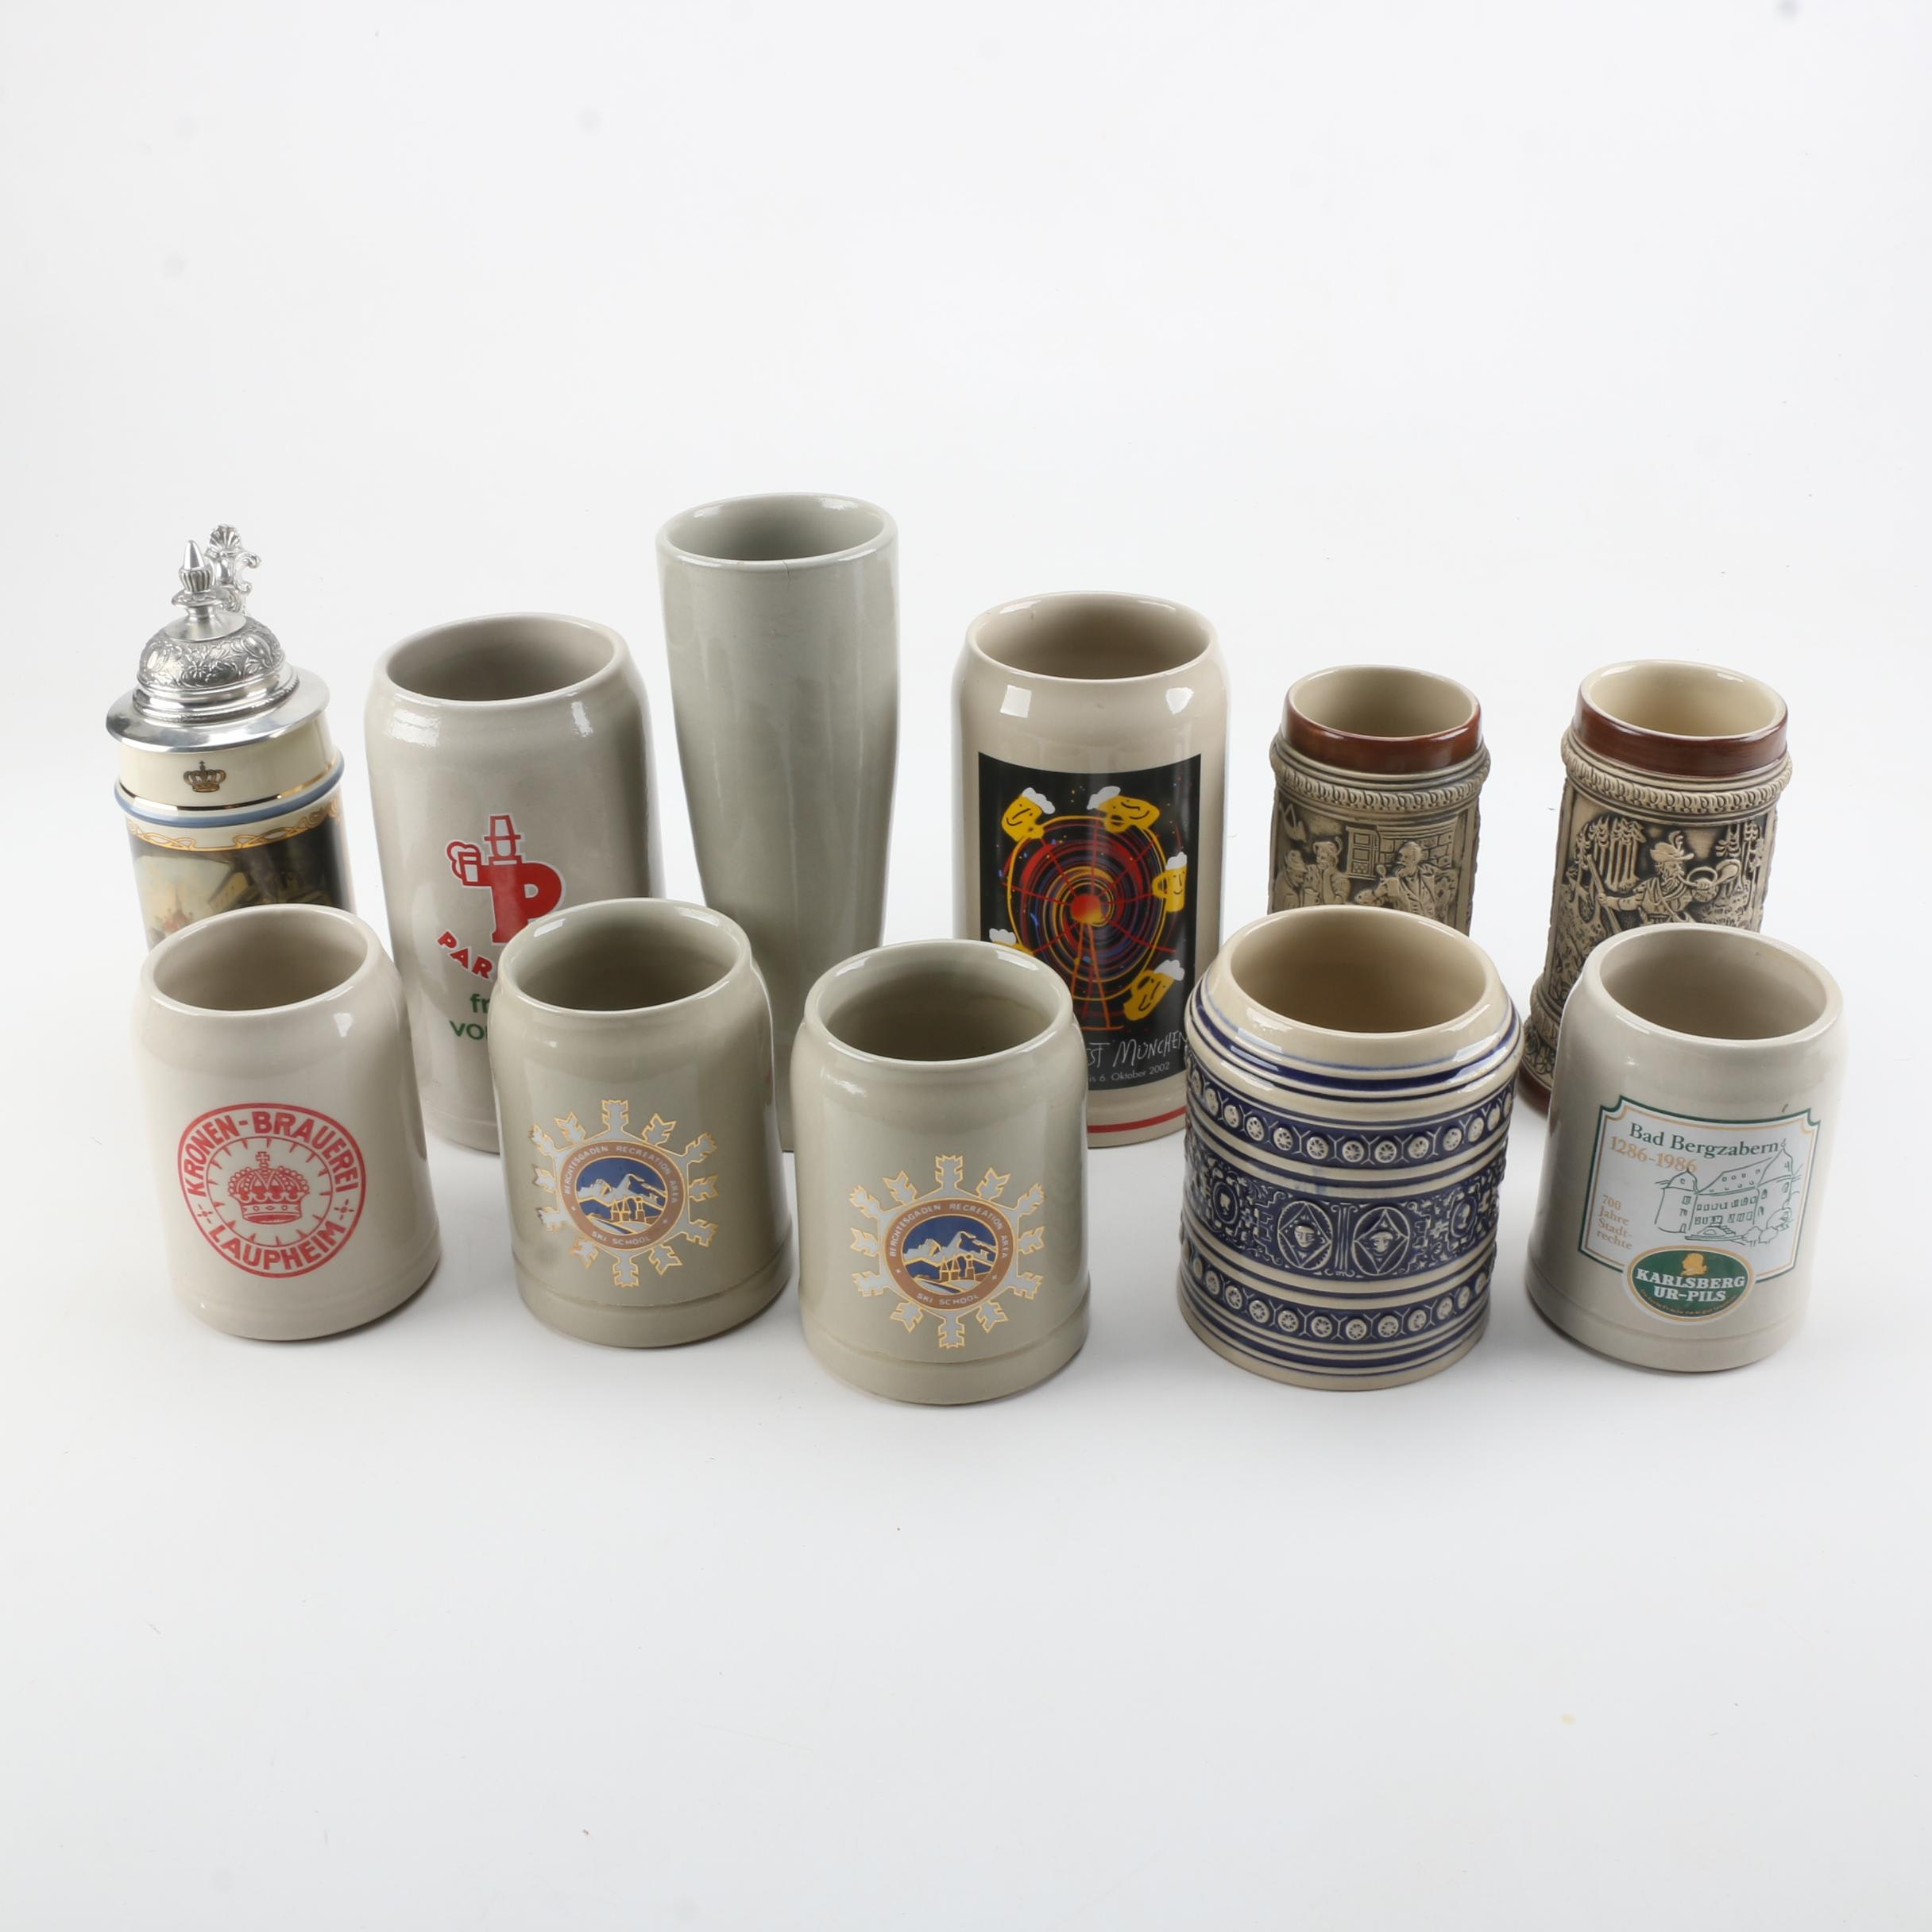 Ceramic Mugs and Steins